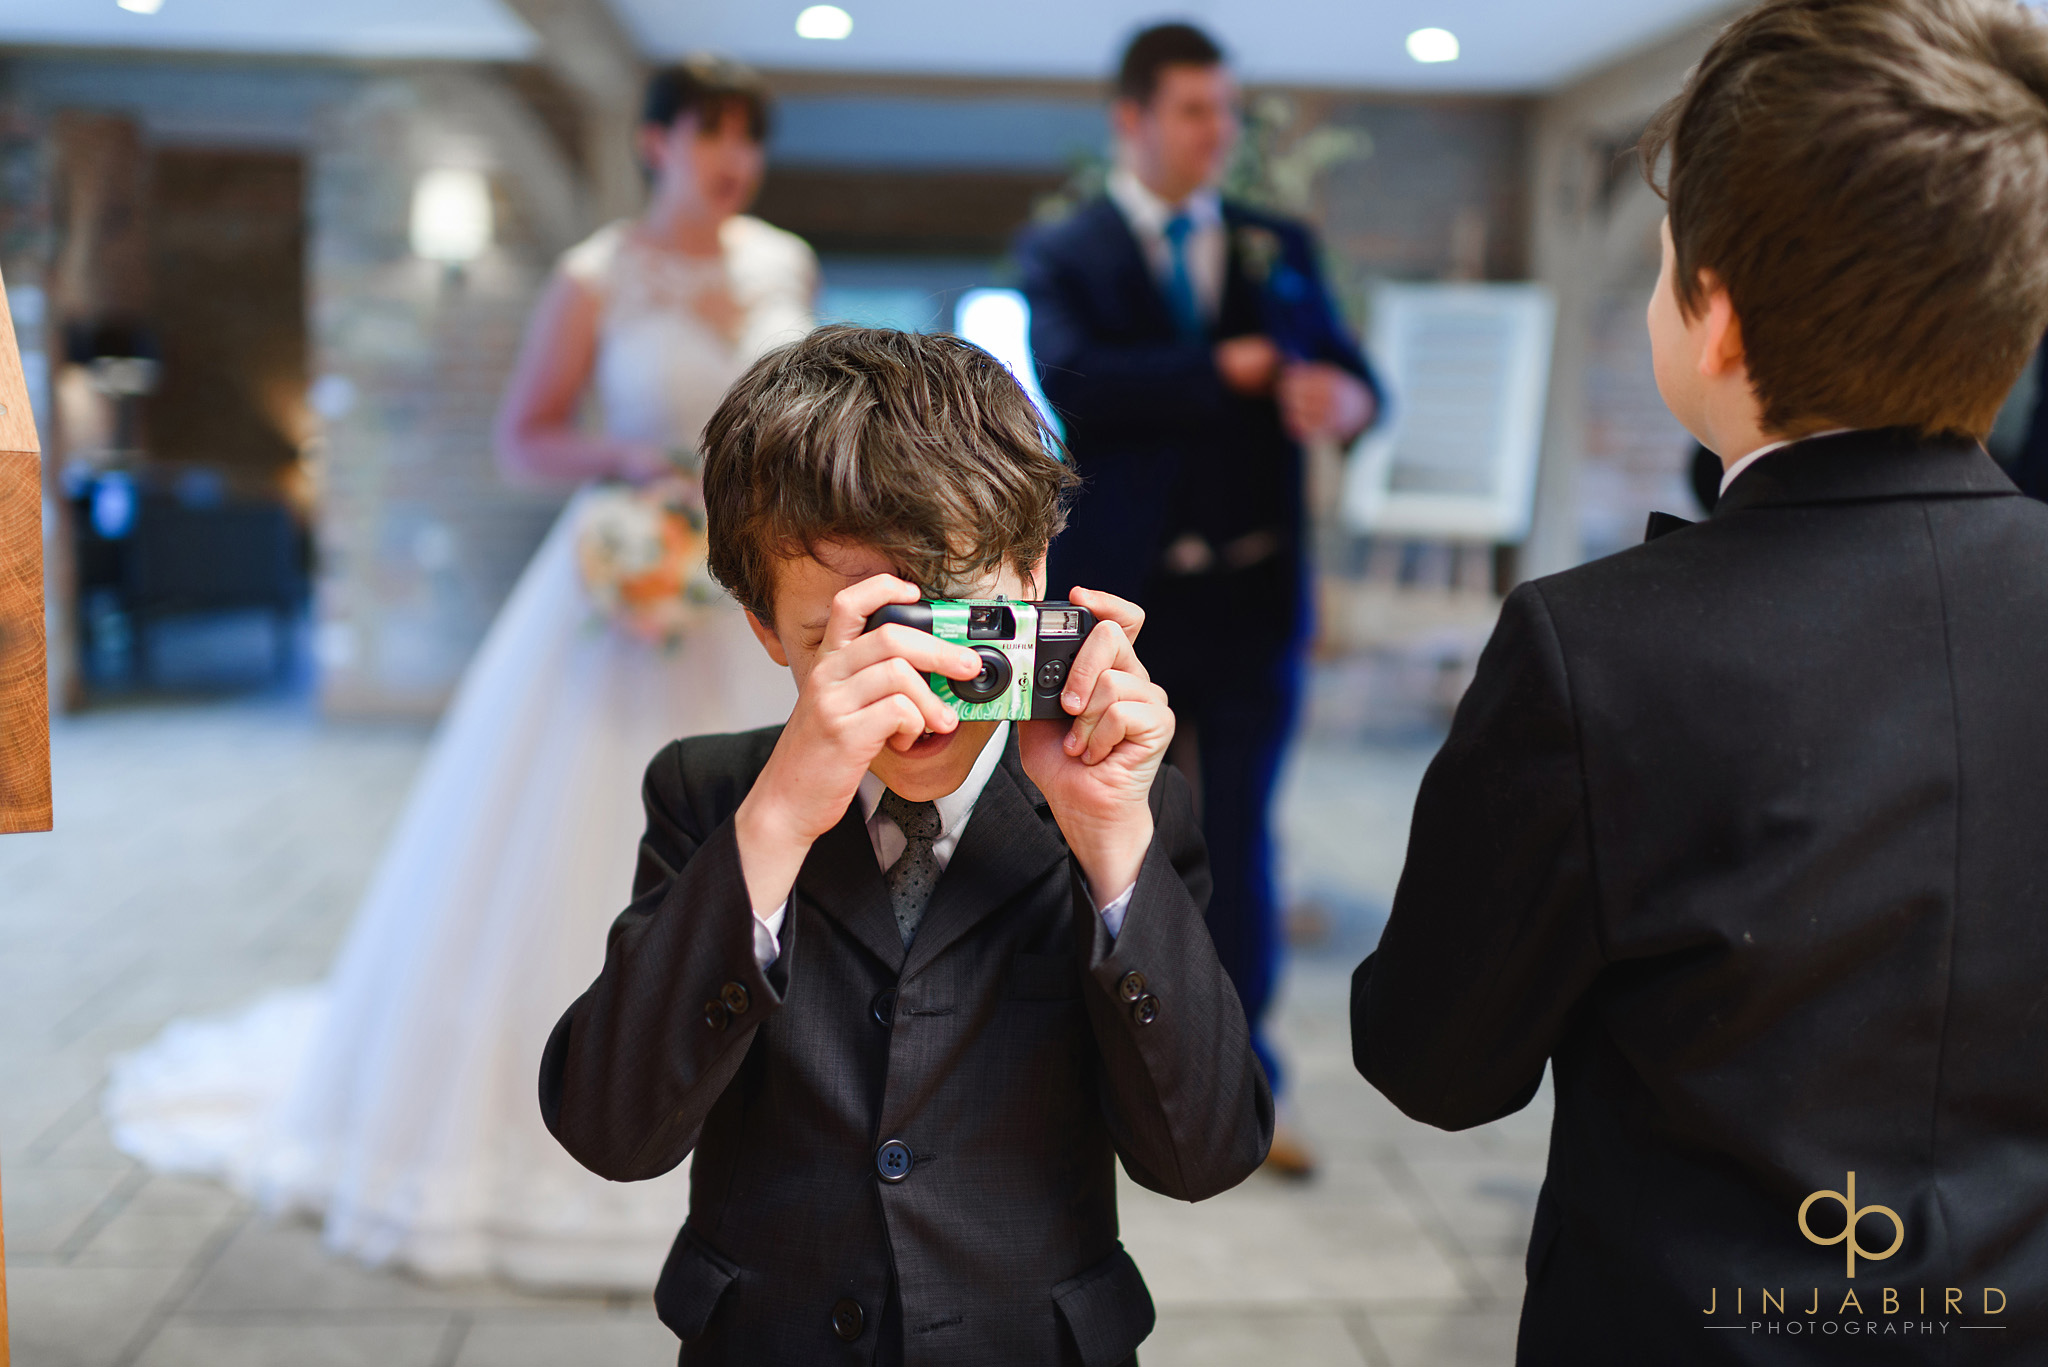 small boy with camera at wedding